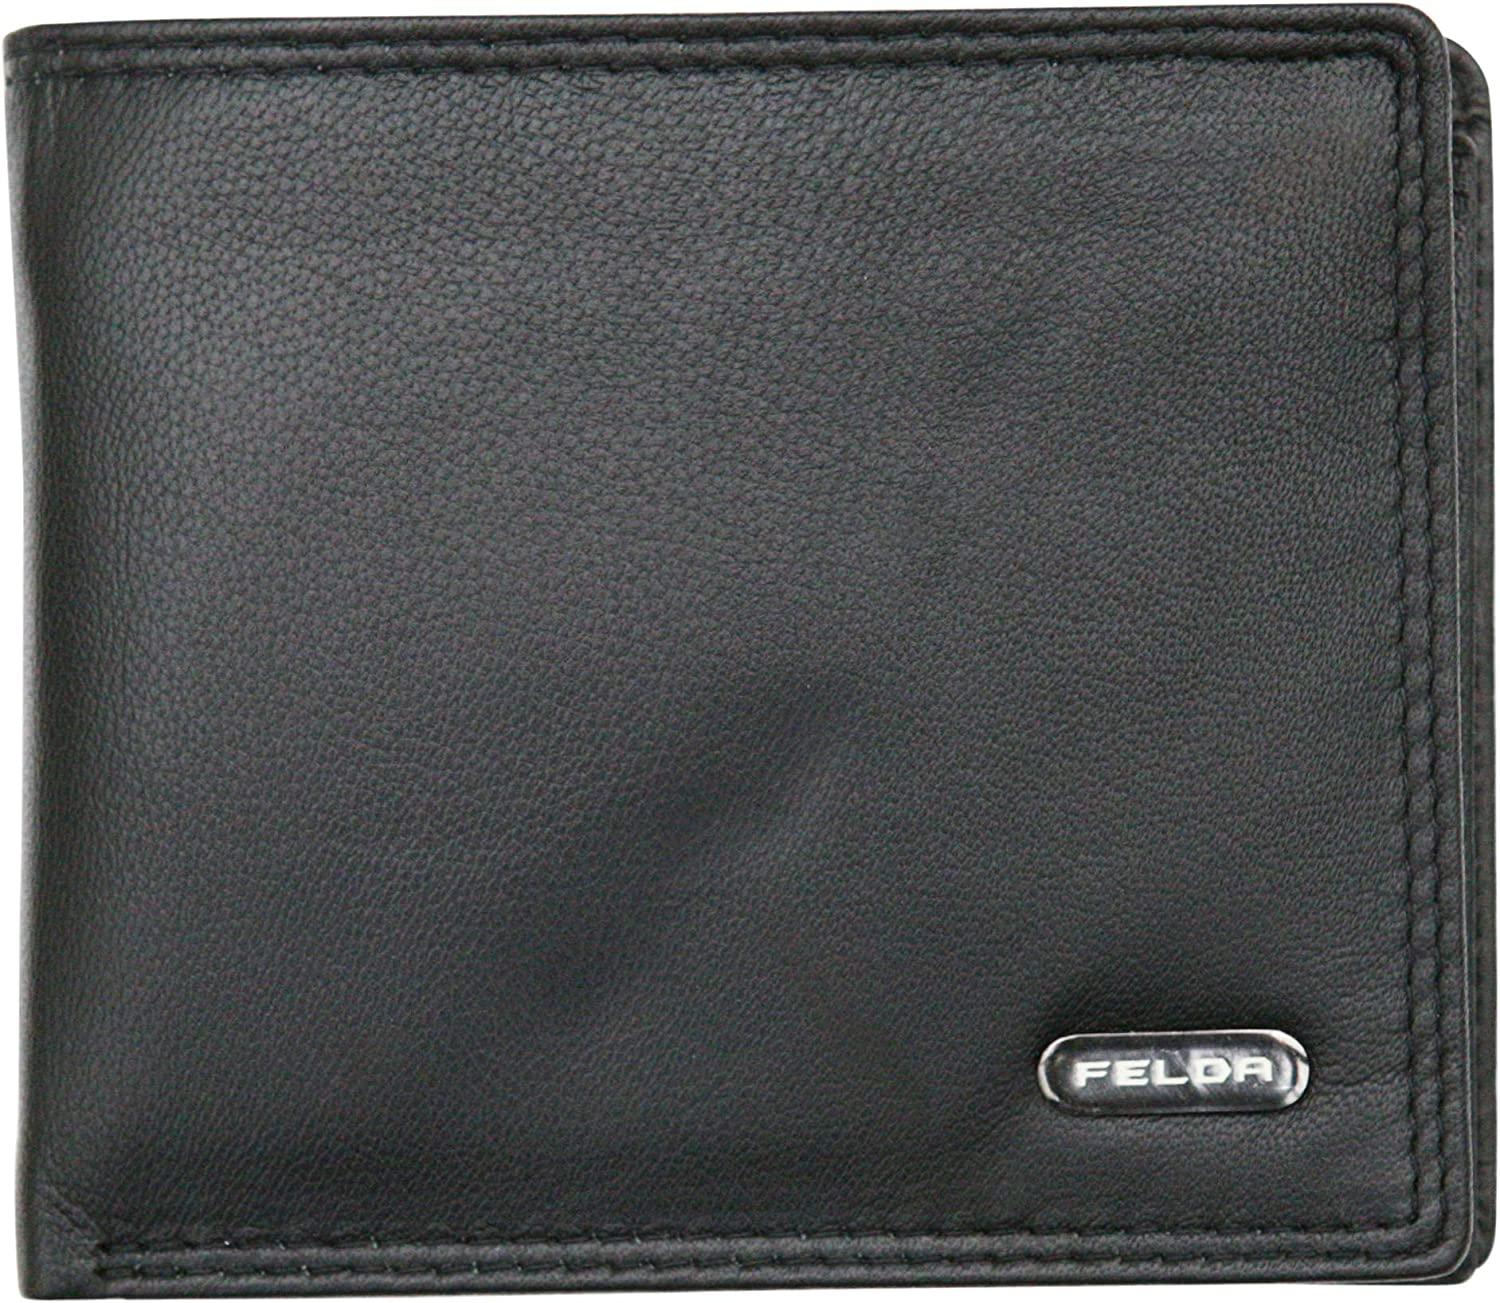 Felda Rfid Blocking Leather Mens Wallet With Cr Note 高級品 Coin 超歓迎された Bank